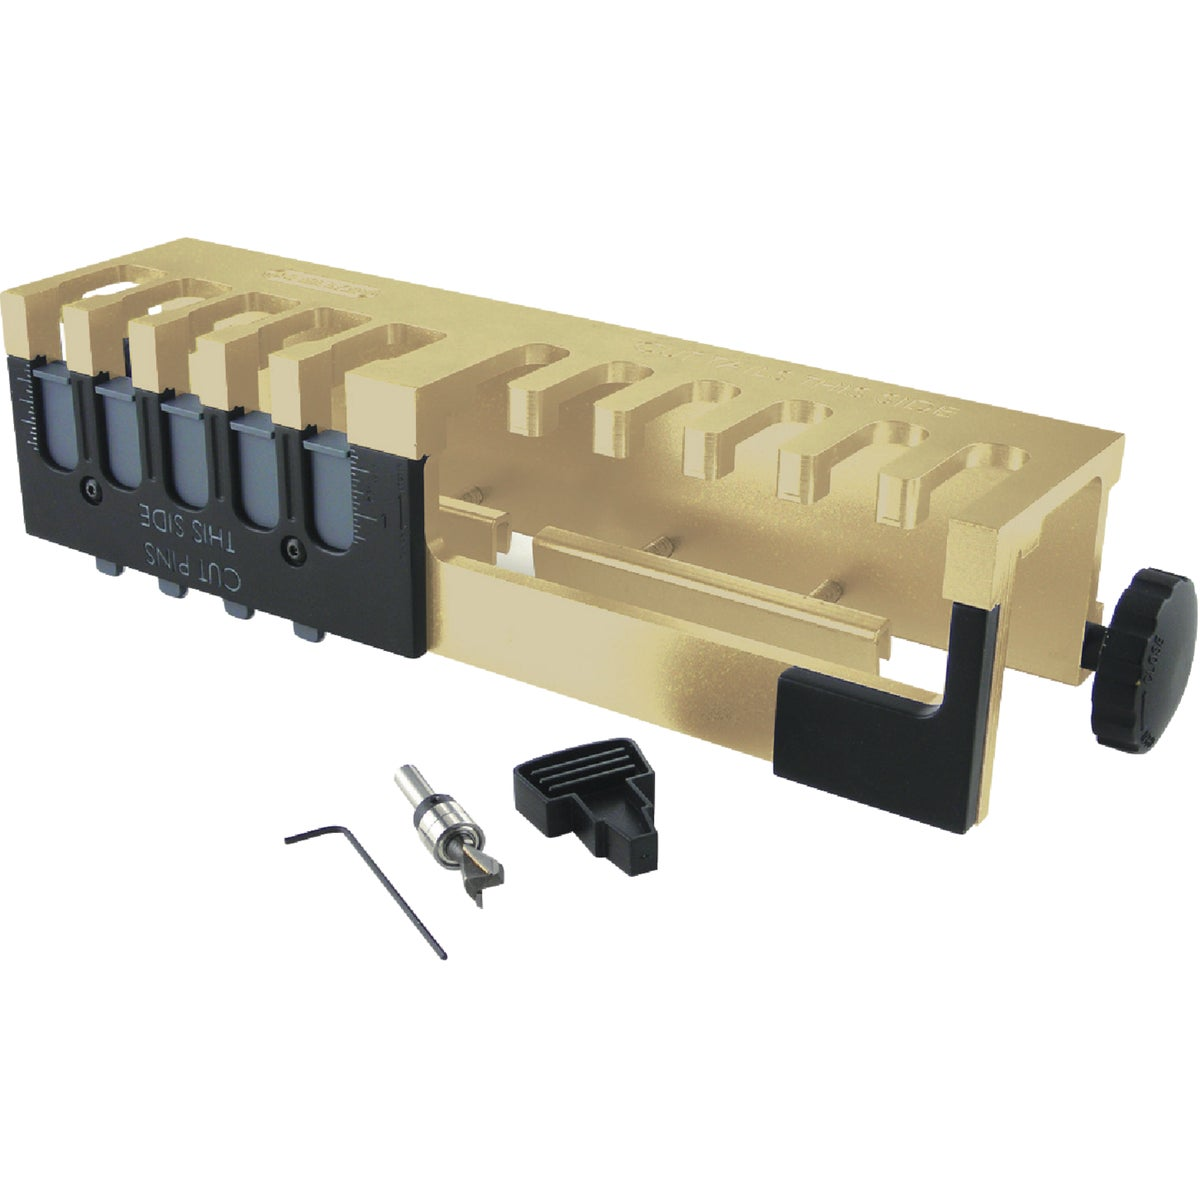 EZ PRO DOVETAIL JIG KIT - 861 by Gen Tools Mfg